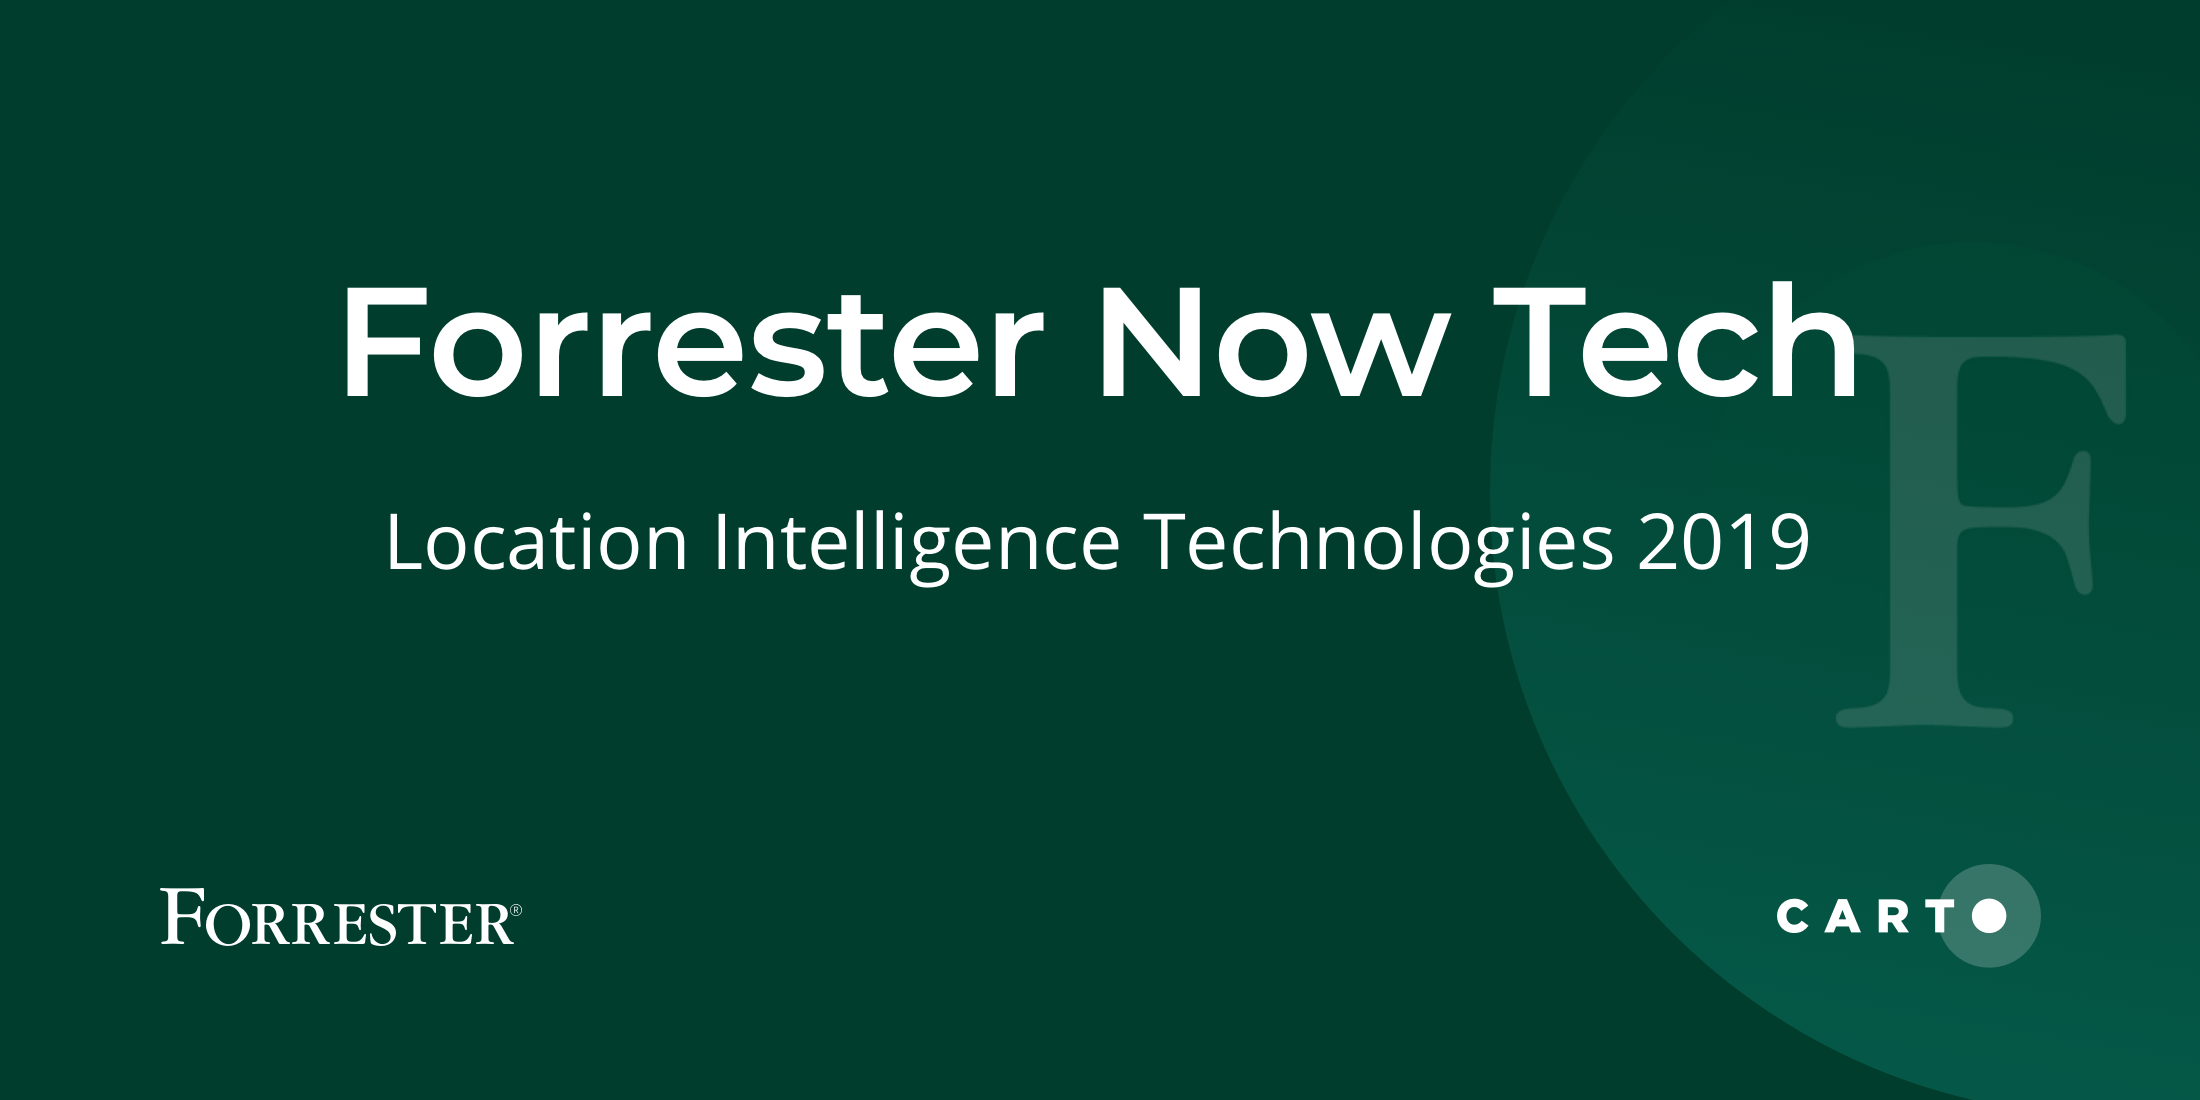 Forrester Includes CARTO Among Location Intelligence Platform Providers In Now Tech Report